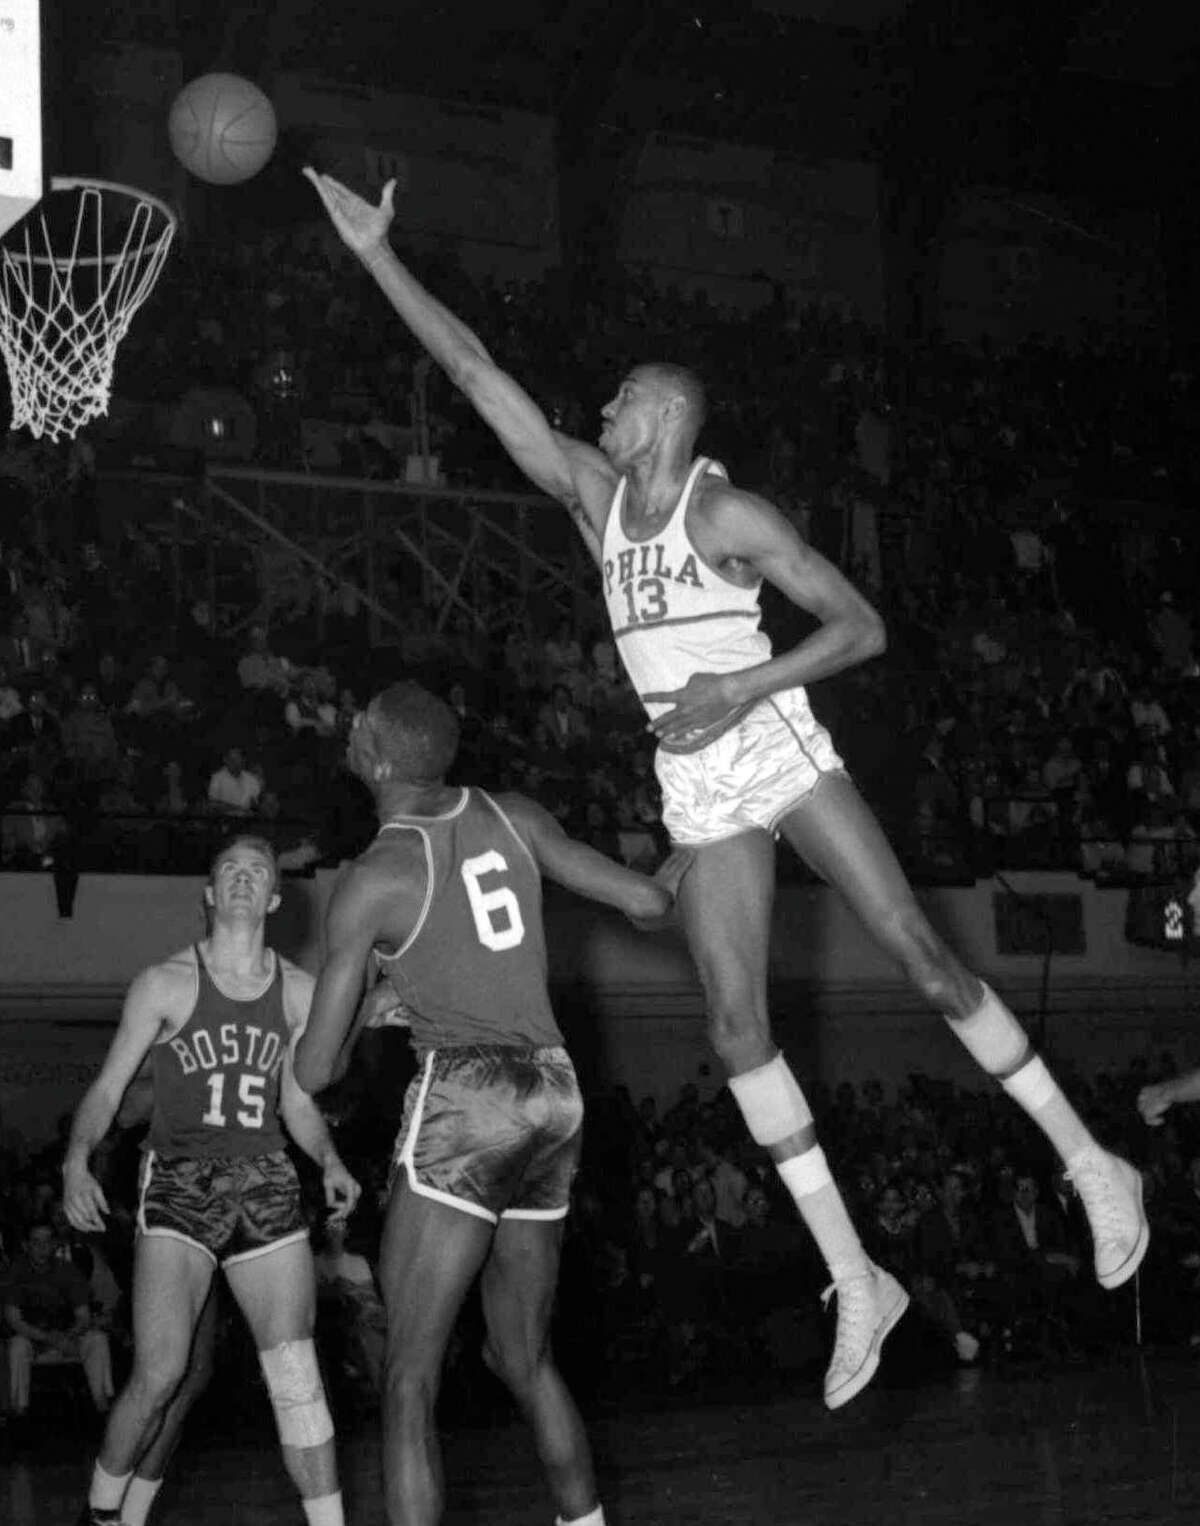 As a member of the Philadelphia and San Francisco Warriors, Hall of Fame center Wilt Chamberlain was an NBA Rookie of the Year, All-Star and MVP. He also scored 100 points for the team in a 1962 game.